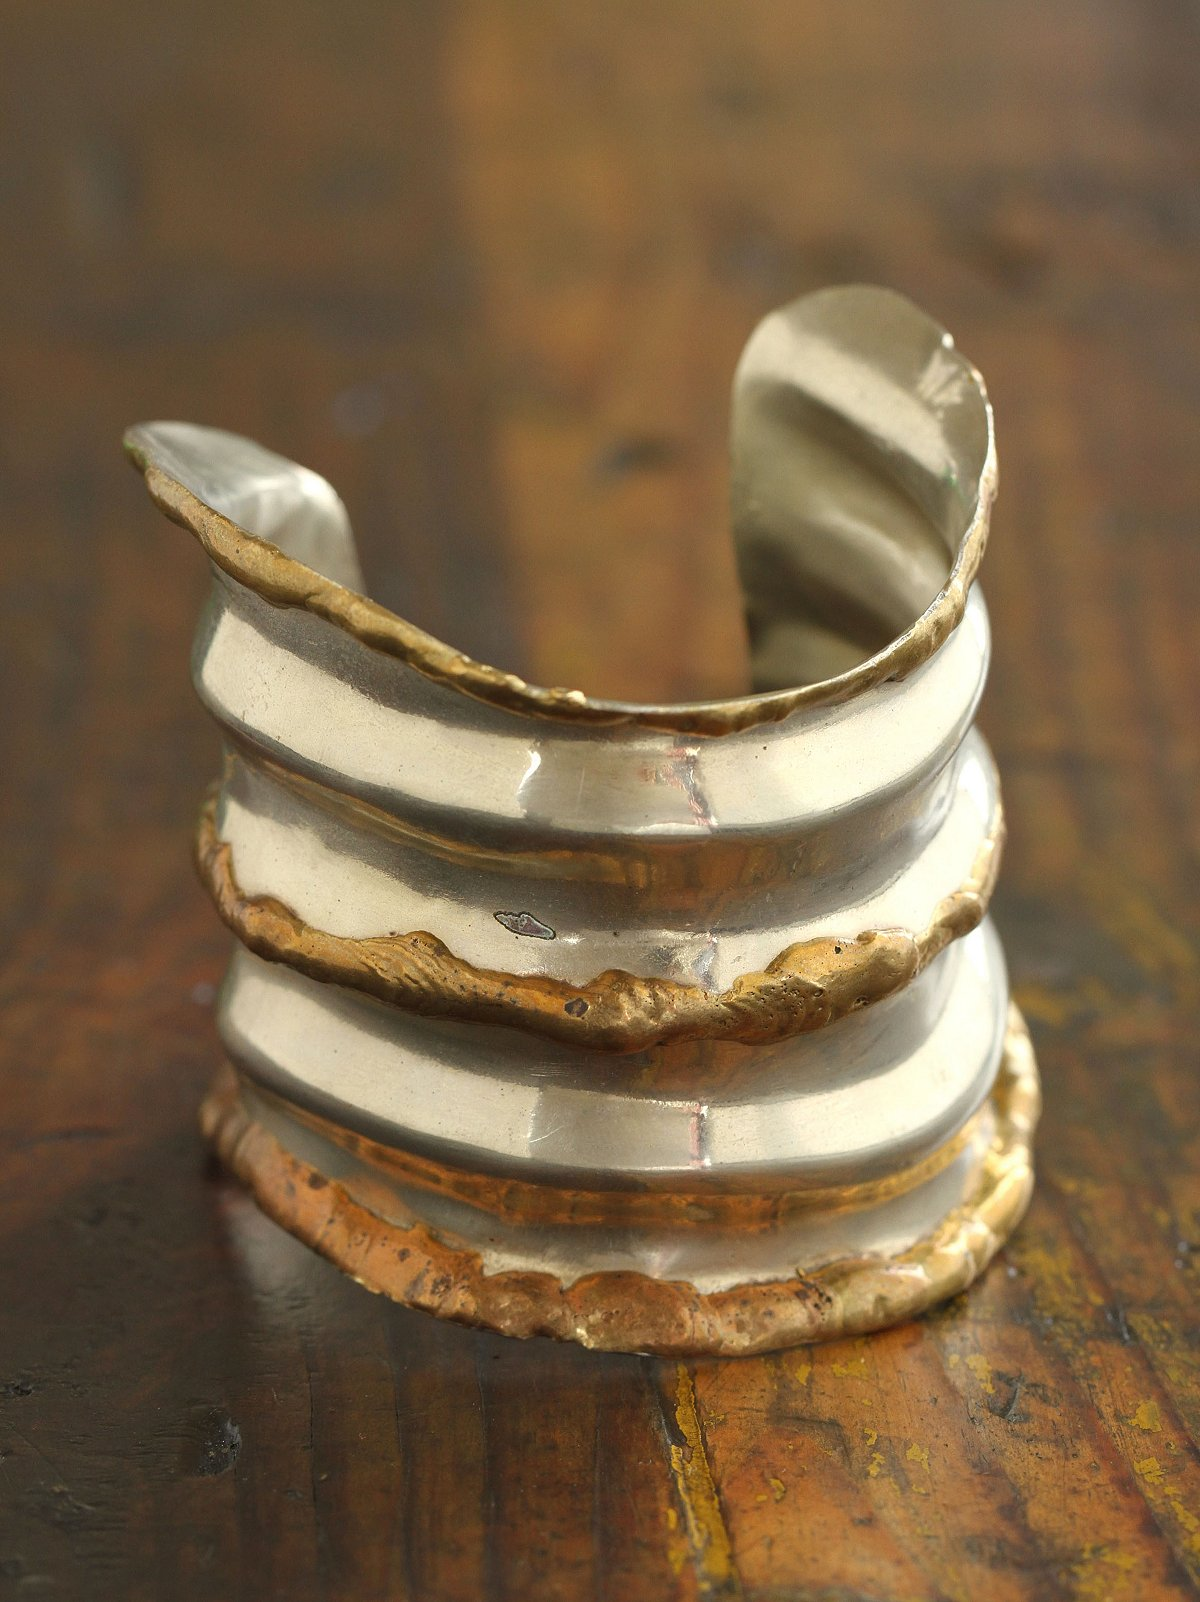 Vintage 1980s Pounded Metal Cuff